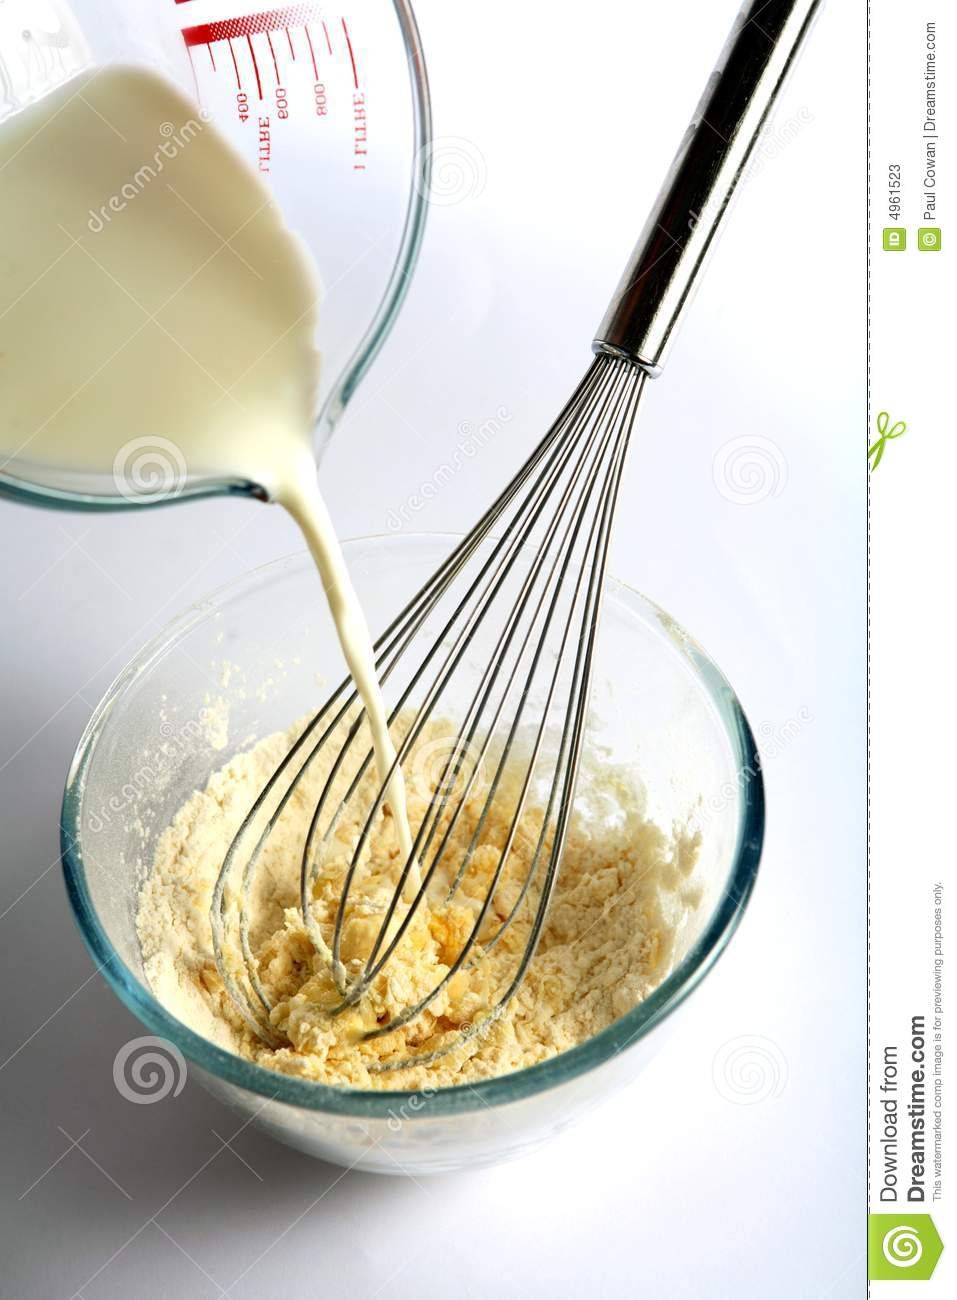 Mixing Batter Stock Image Image Of Cooking Pour